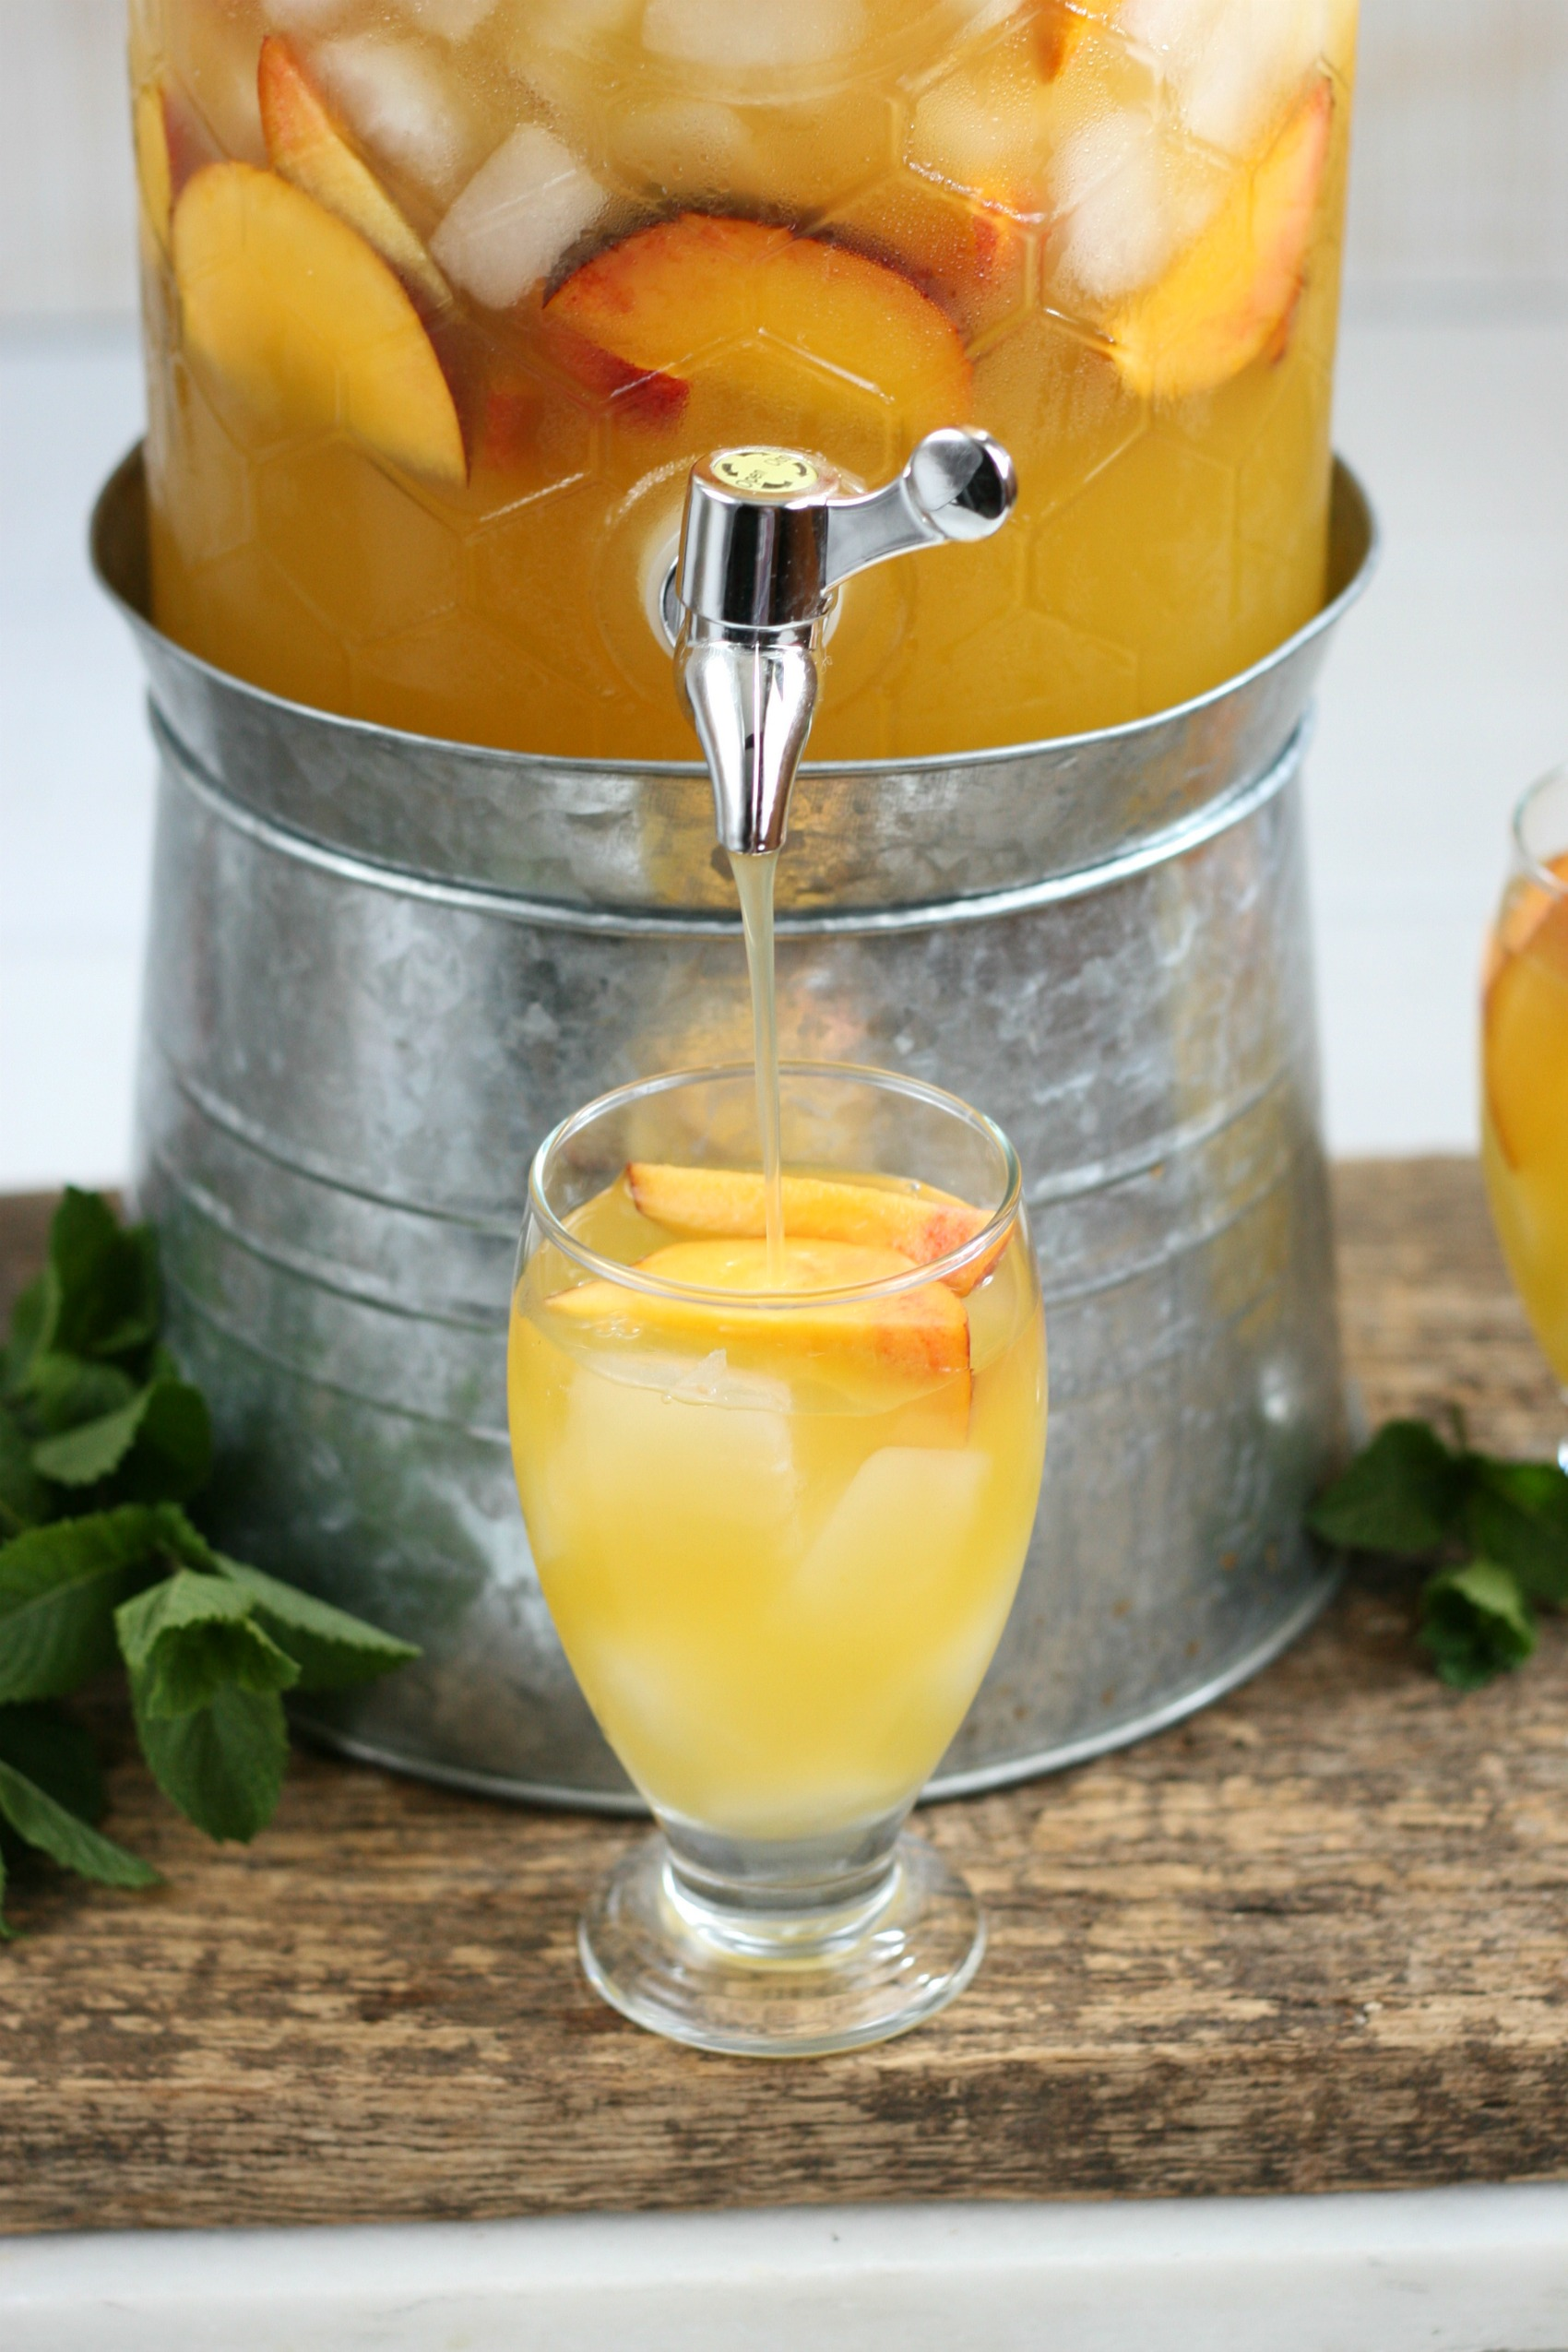 Summer sangria pouring out of a clear glass drink dispenser into a footed glass with ice cubes and slices of peaches.